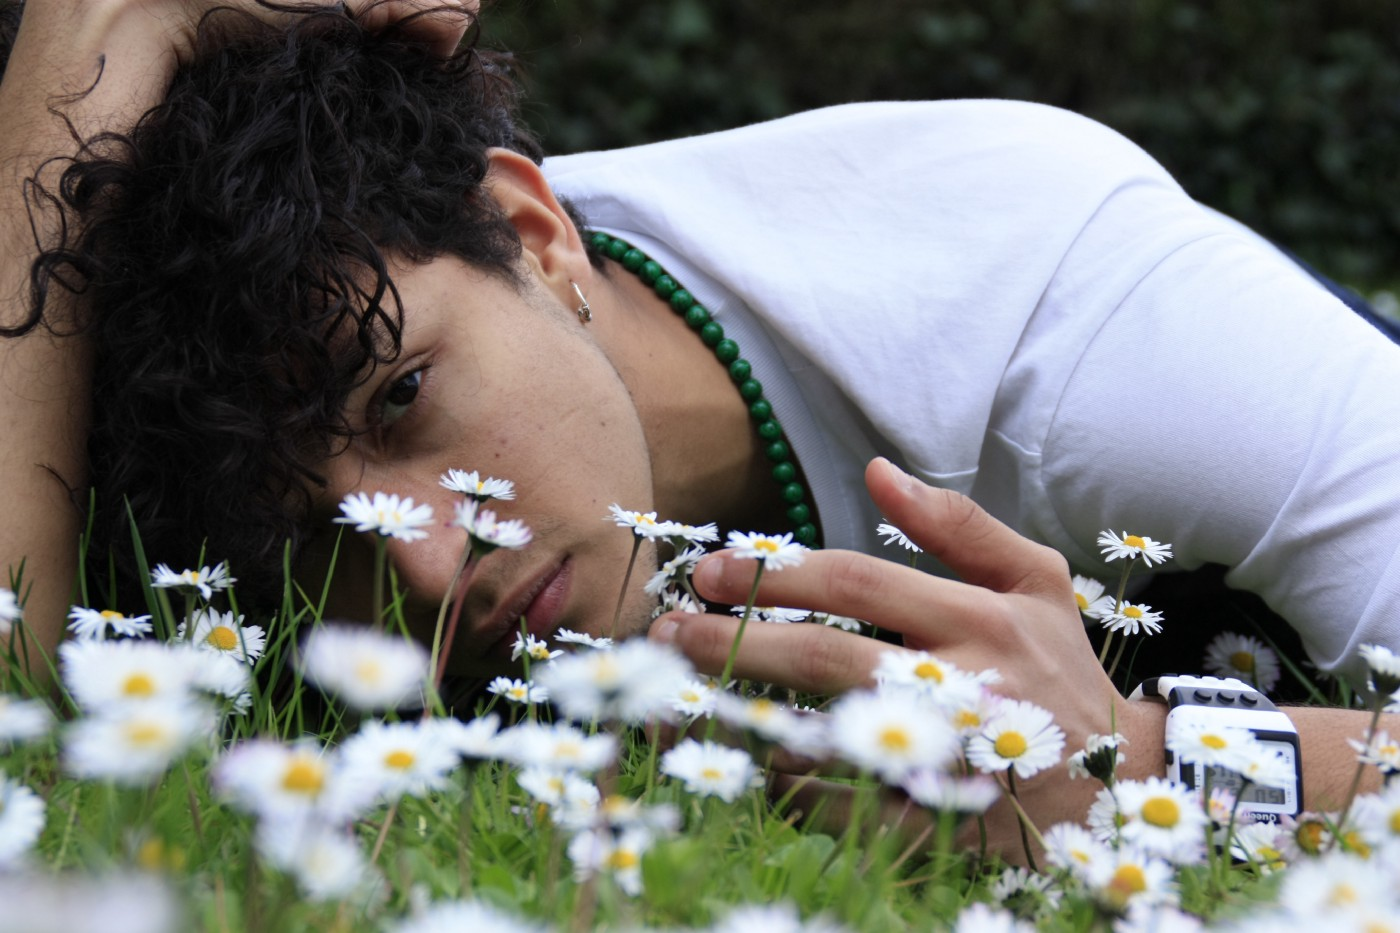 teen boy laying in daisies solumnly looking into camera